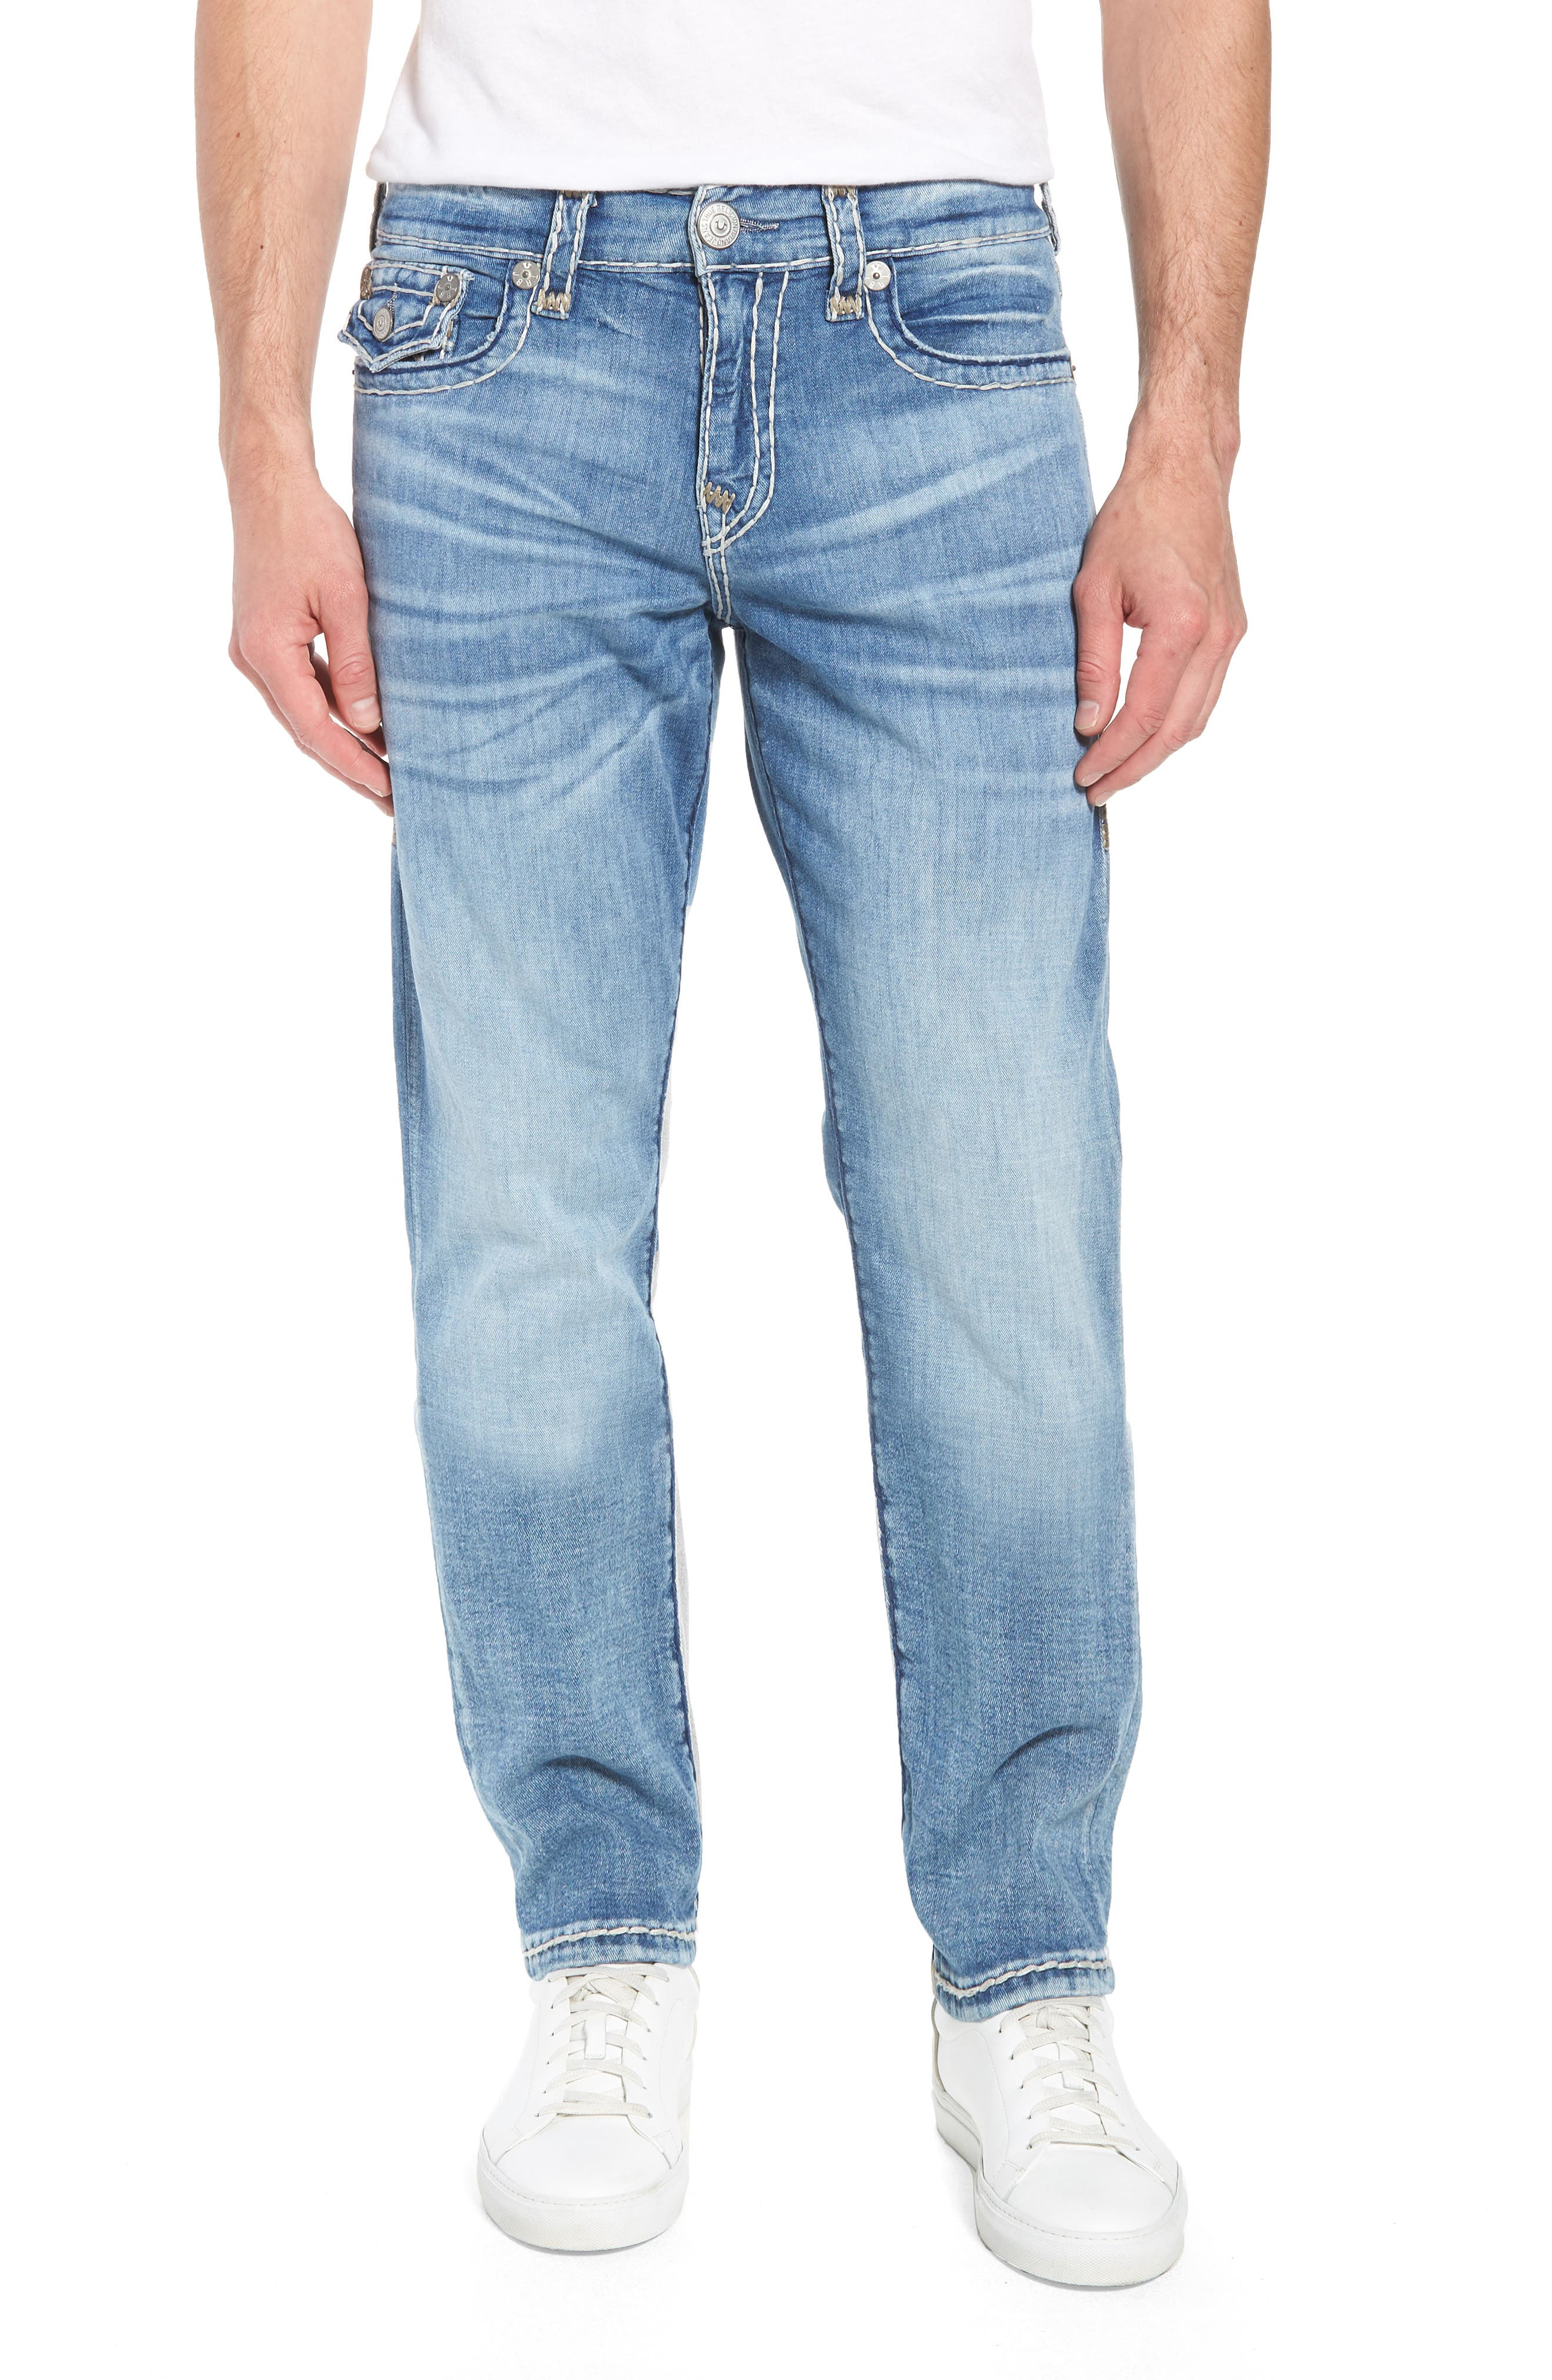 Geno Straight Leg Jeans,                         Main,                         color, 401